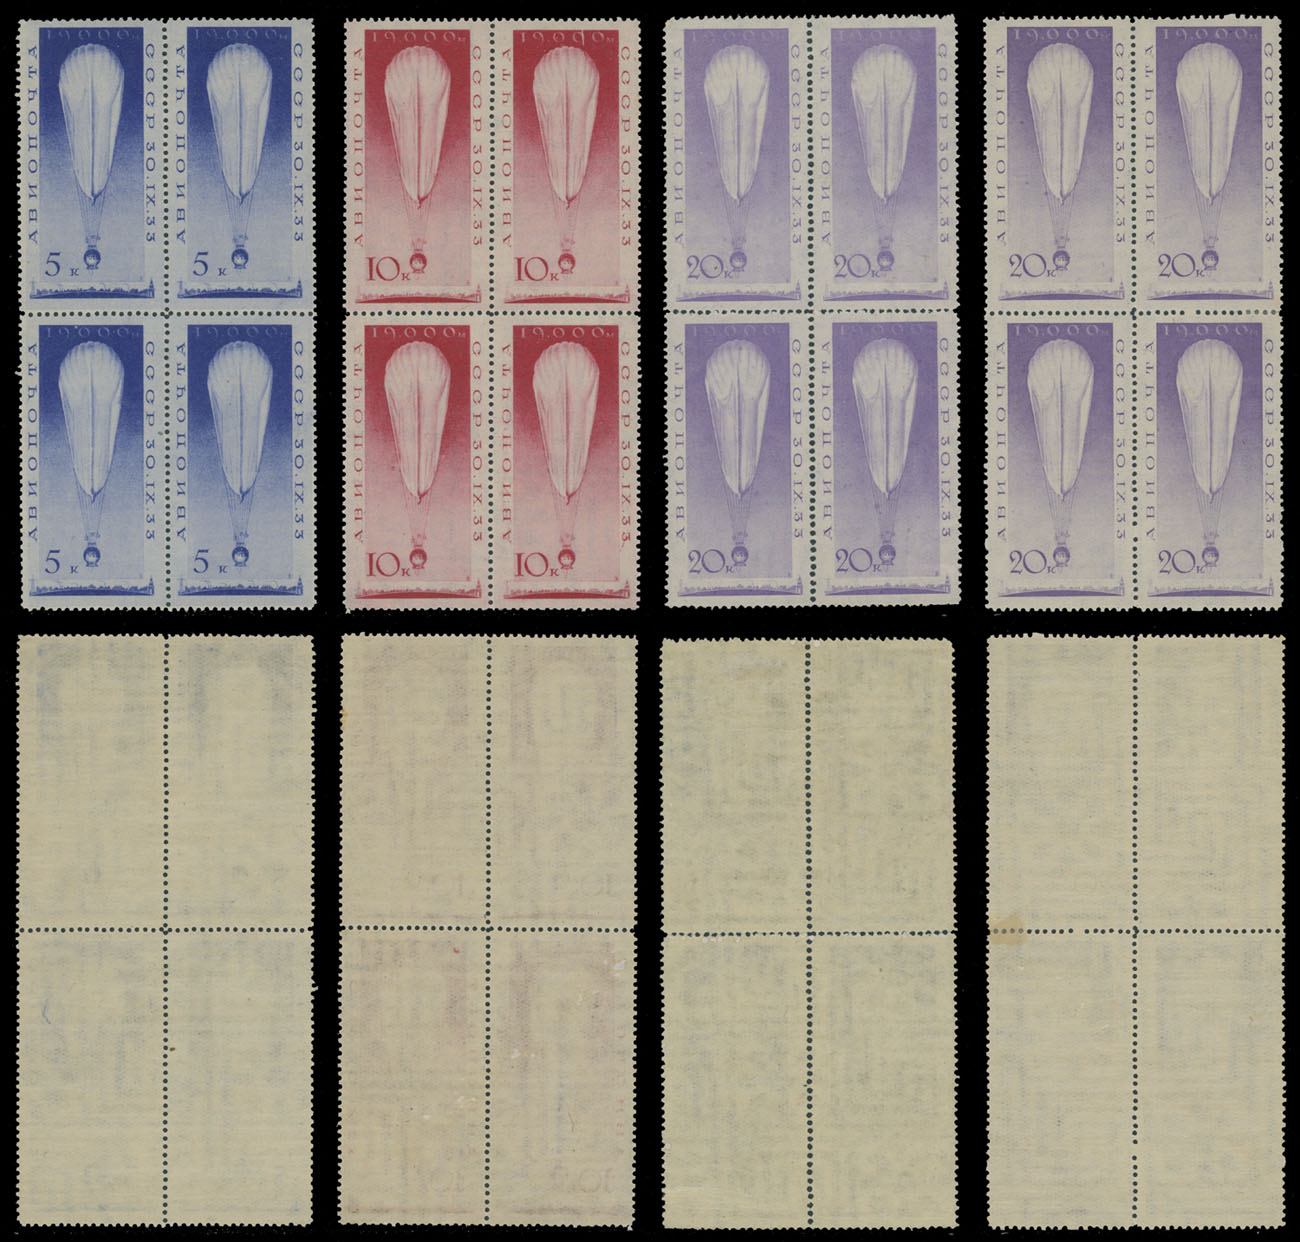 Lot 842 - russia. air post stamps and covers  -  Raritan Stamps Inc. Live Bidding Auction #82